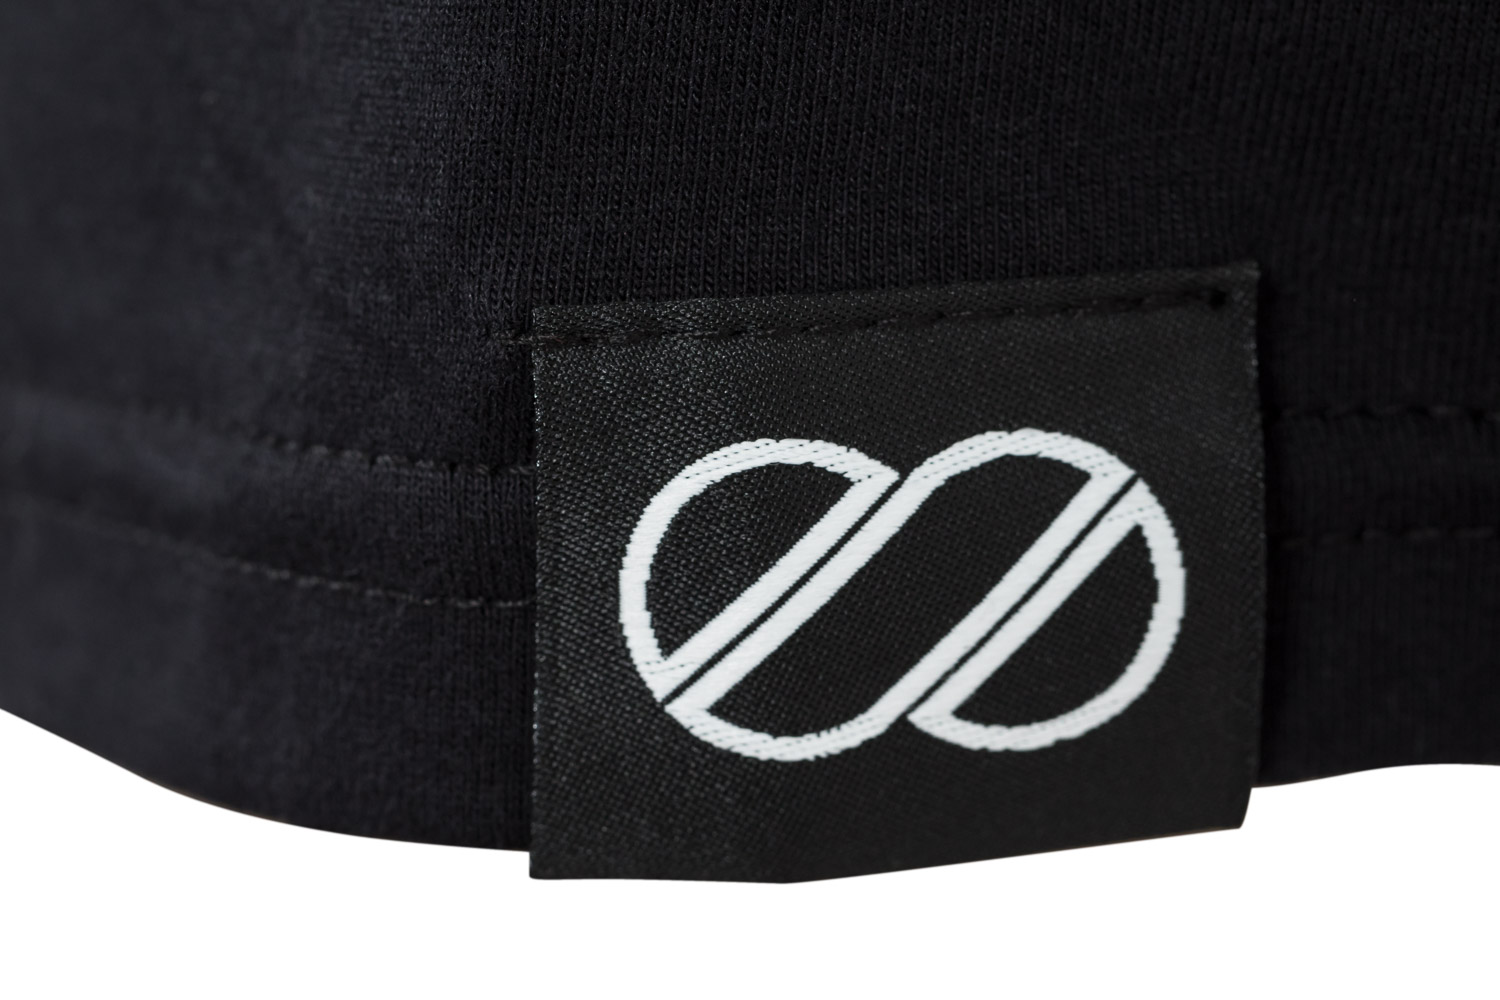 8bar tshirt detail black - Hoodie - 8bar logo